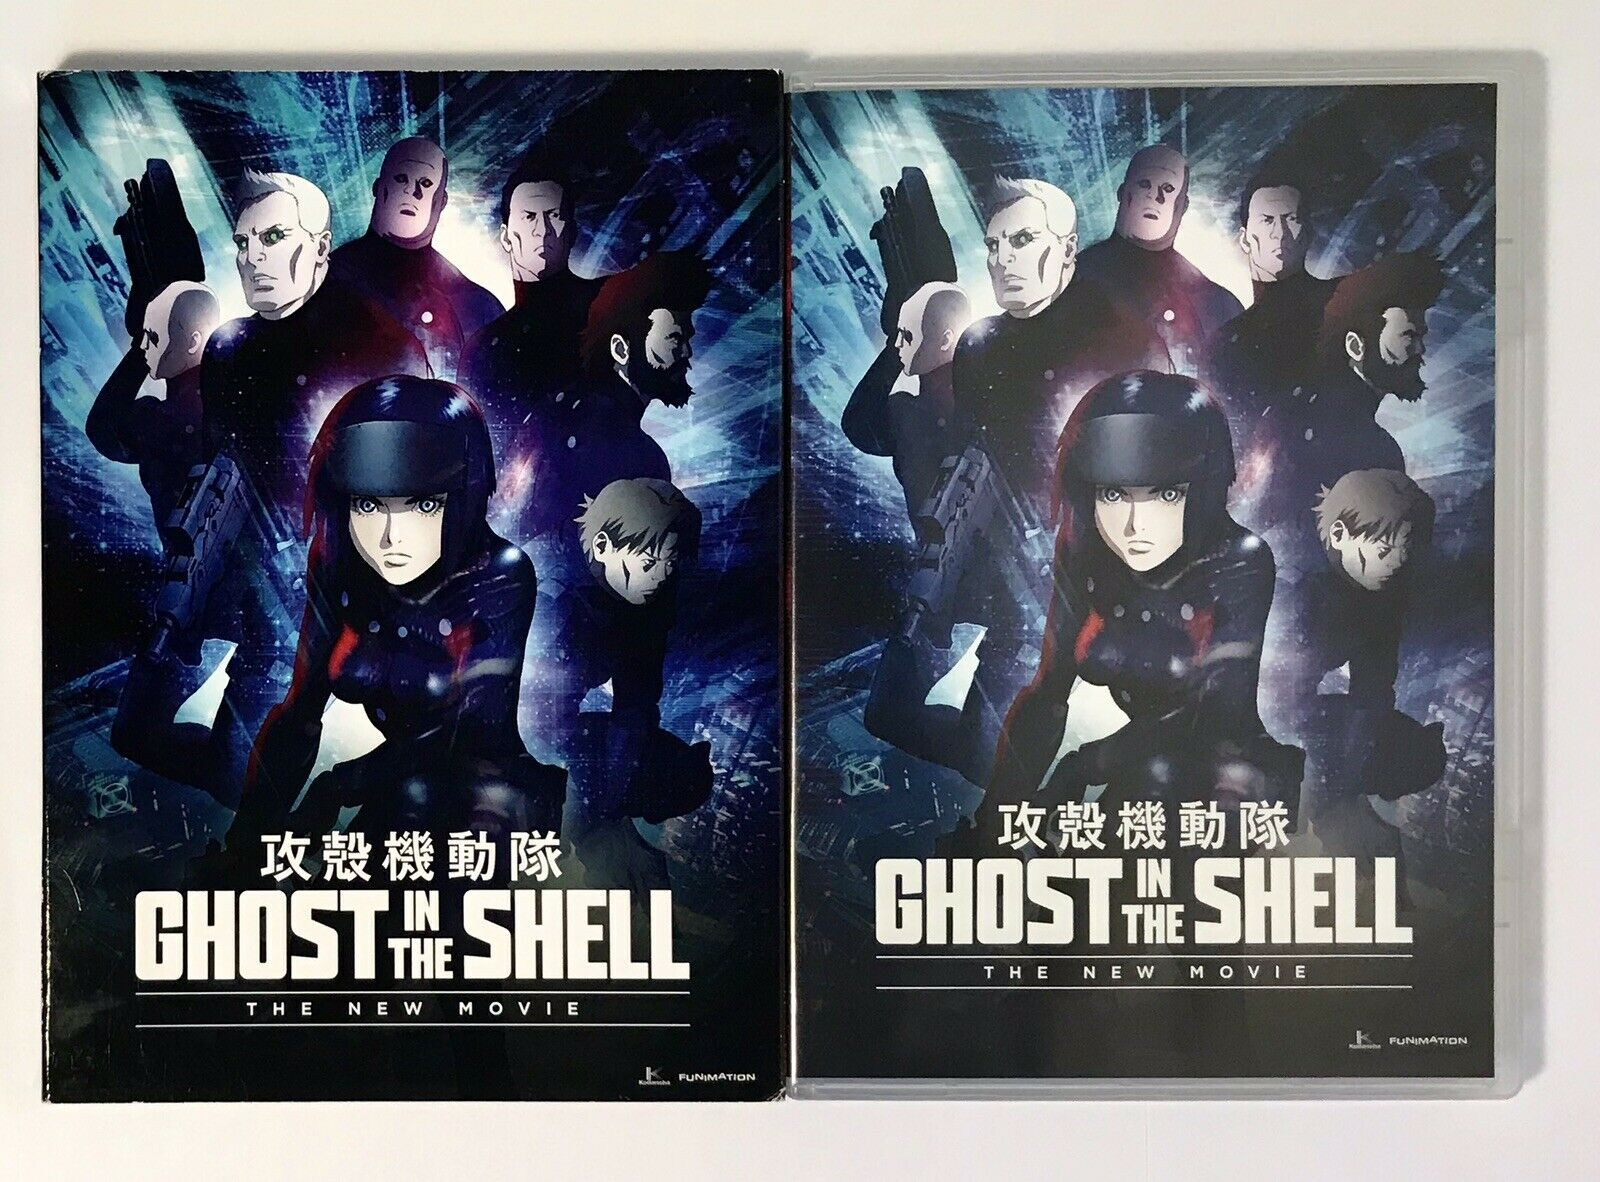 Ghost In The Shell Arise The Movie Dvd Anime Ova Film 2015 Funimation R1 For Sale Online Ebay